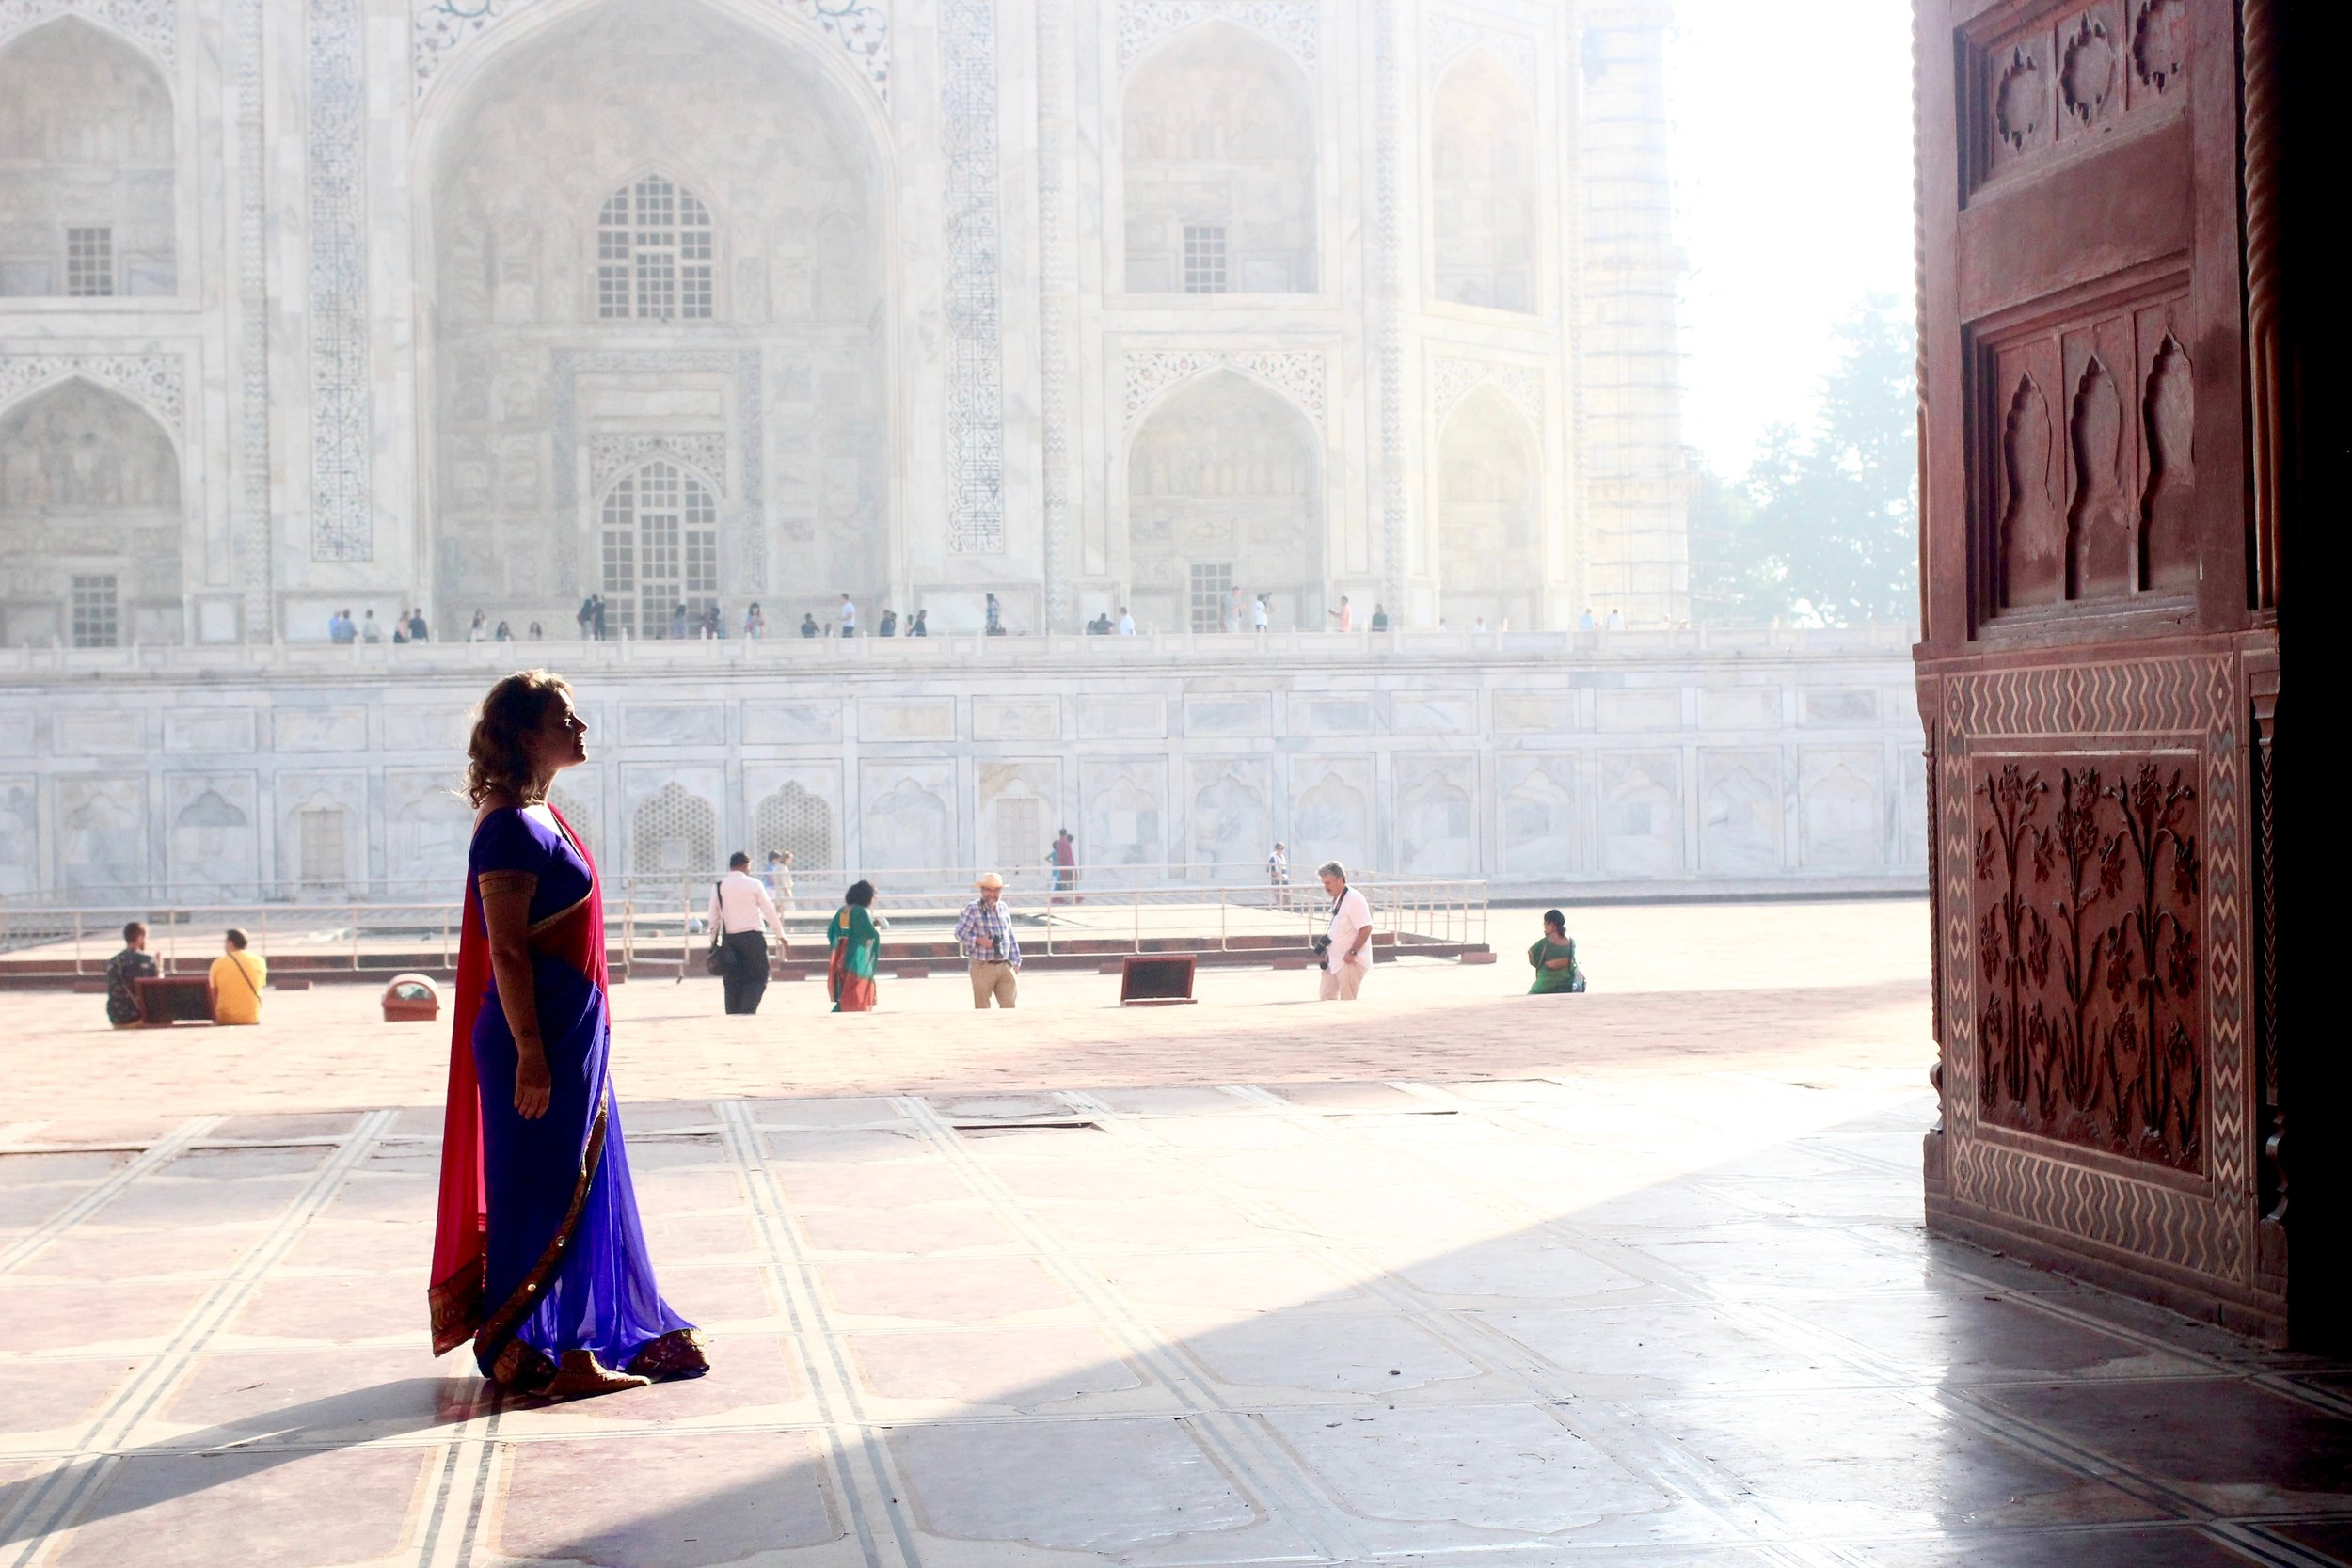 Nothing beats wearing your only and most beautiful sari inside the Taj Mahal.